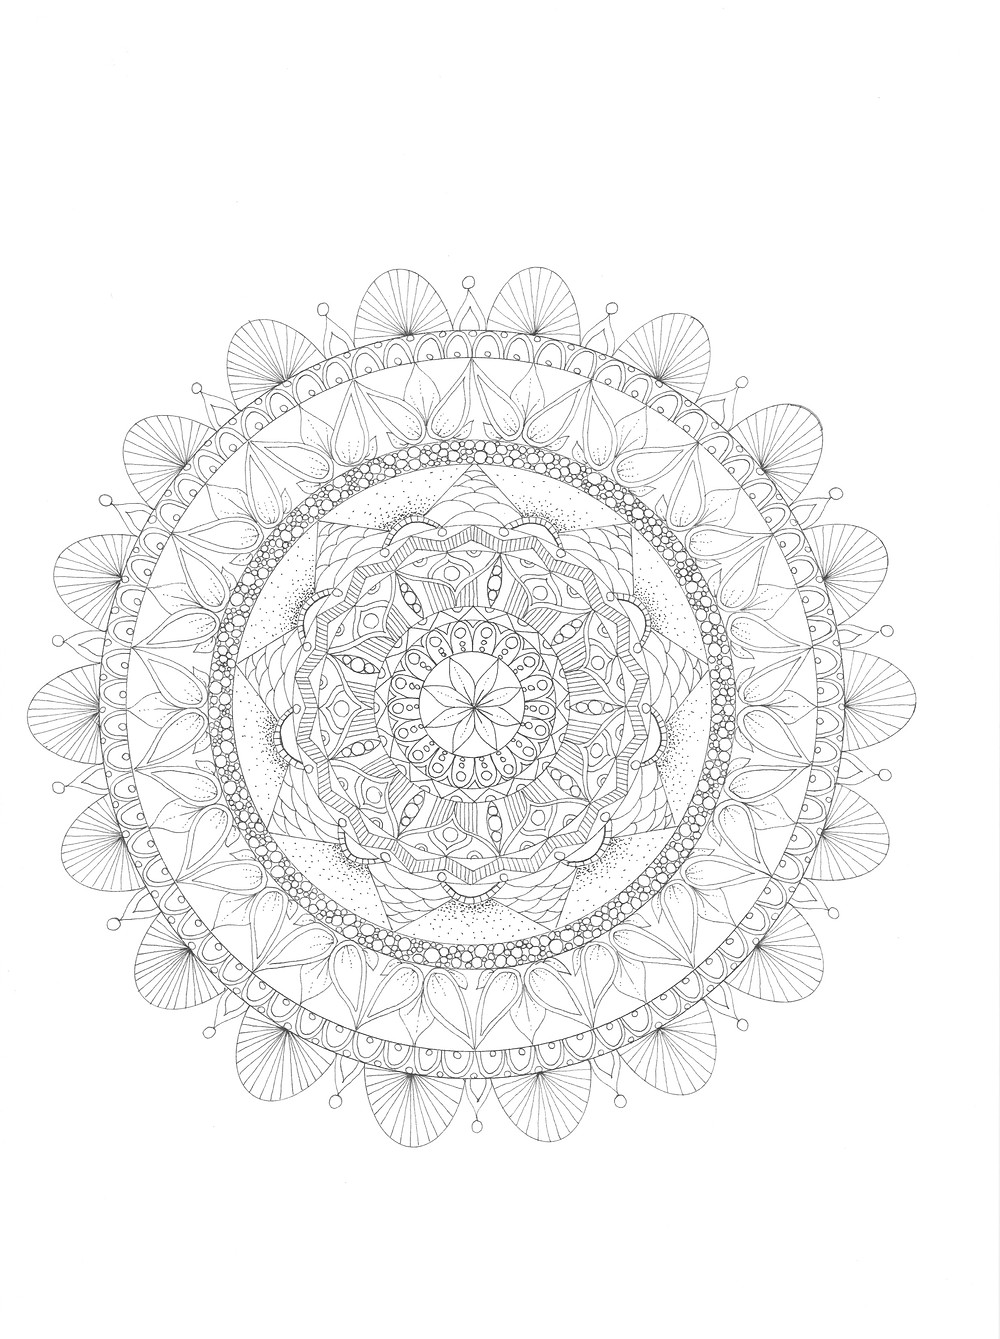 domed mandala.jpeg